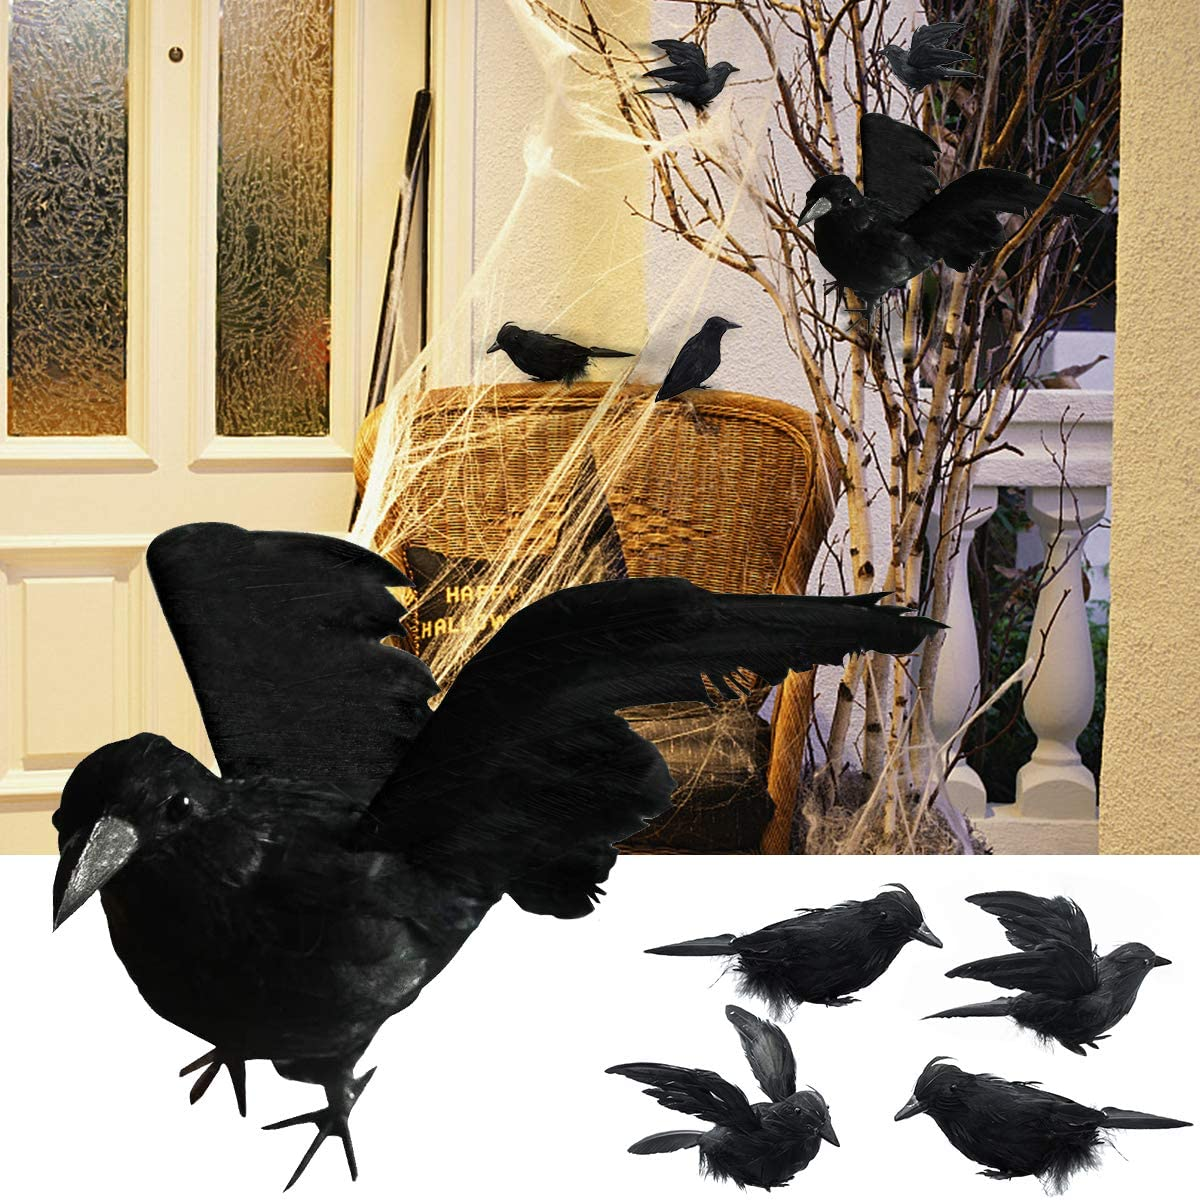 Evoio Halloween Black Feathered Crows -Handmade Black Feathered Crow for Halloween Decorations/Black Birds Ravens Props Décor(1 Pc Huge,4 Pc Small)